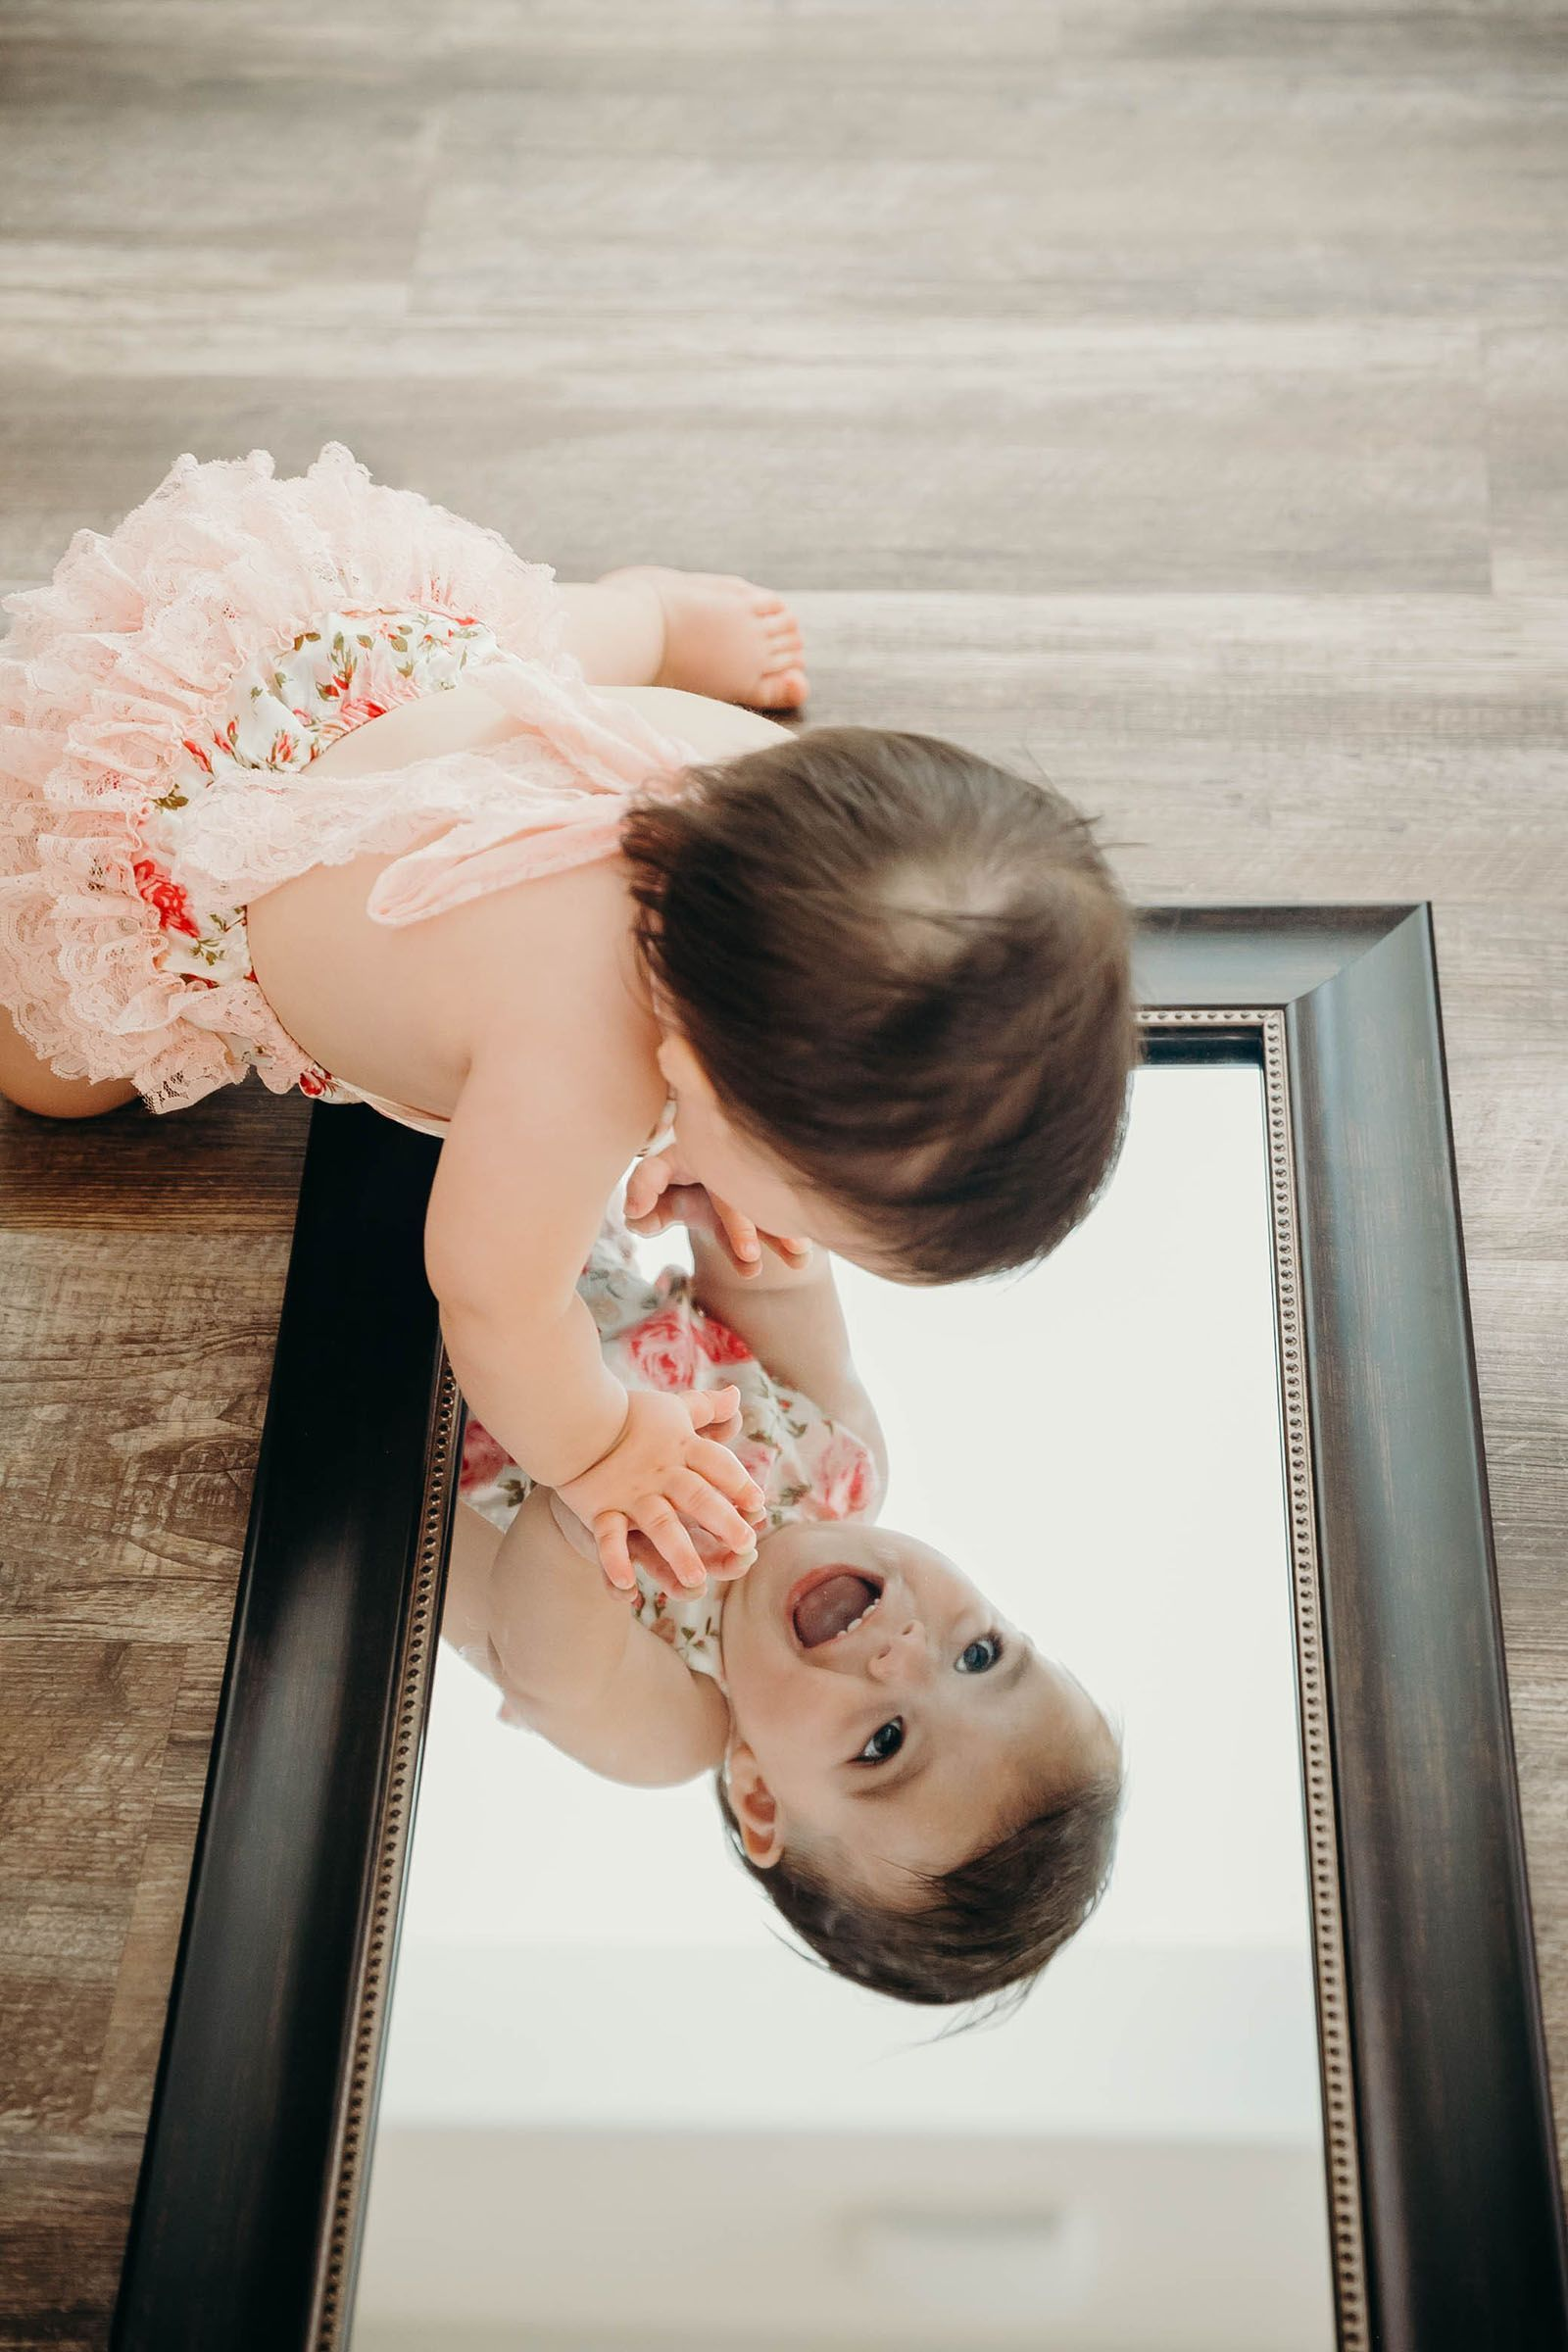 Mia - 1 Year Shoot - Aileen Aurora Photography - donut smash toddler portraits 1yearbaby